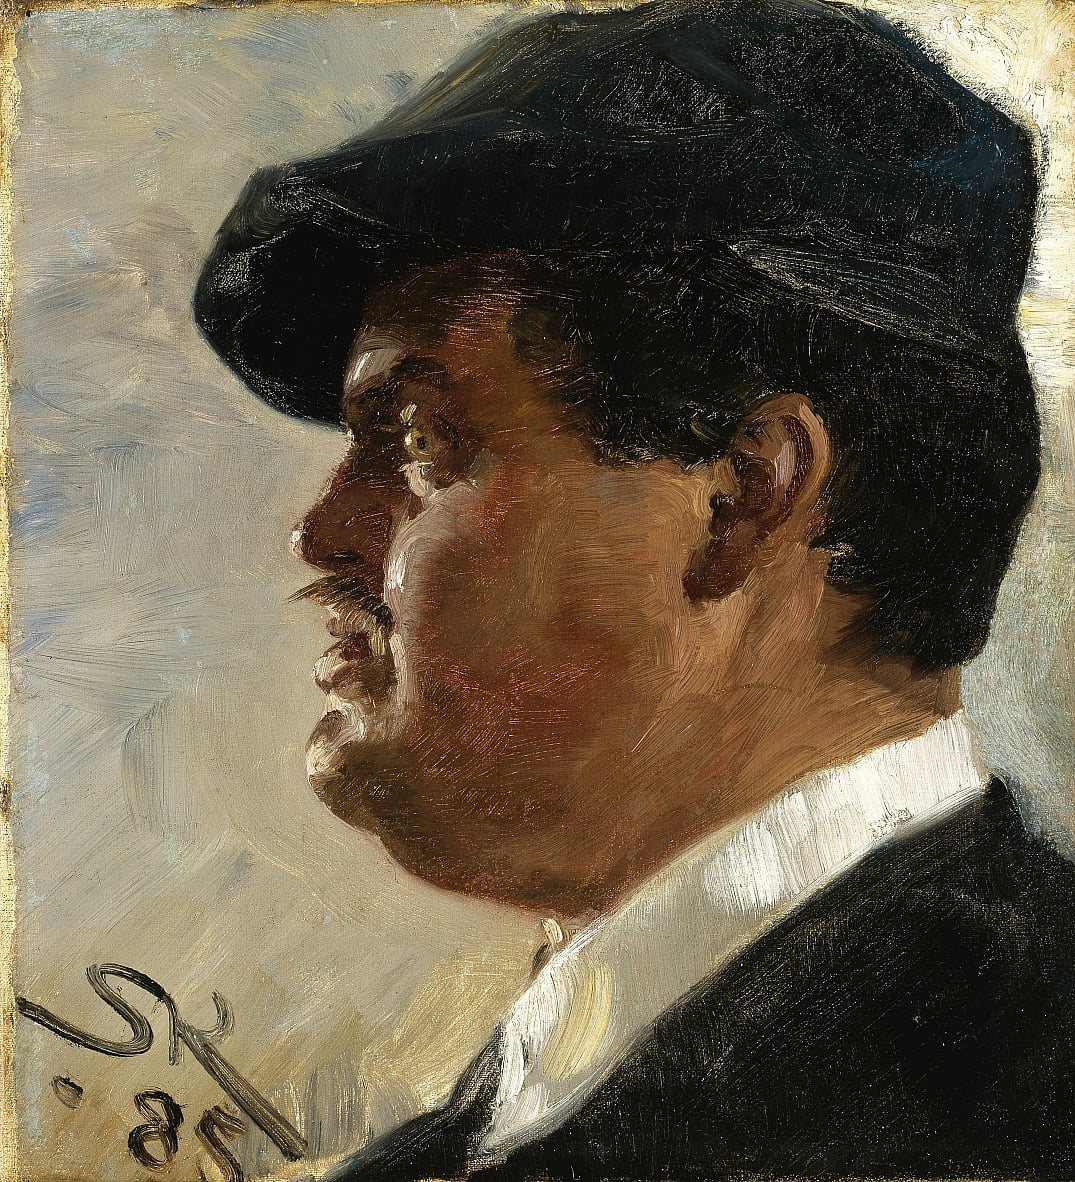 Carl Locher by Peder Severin Krøyer